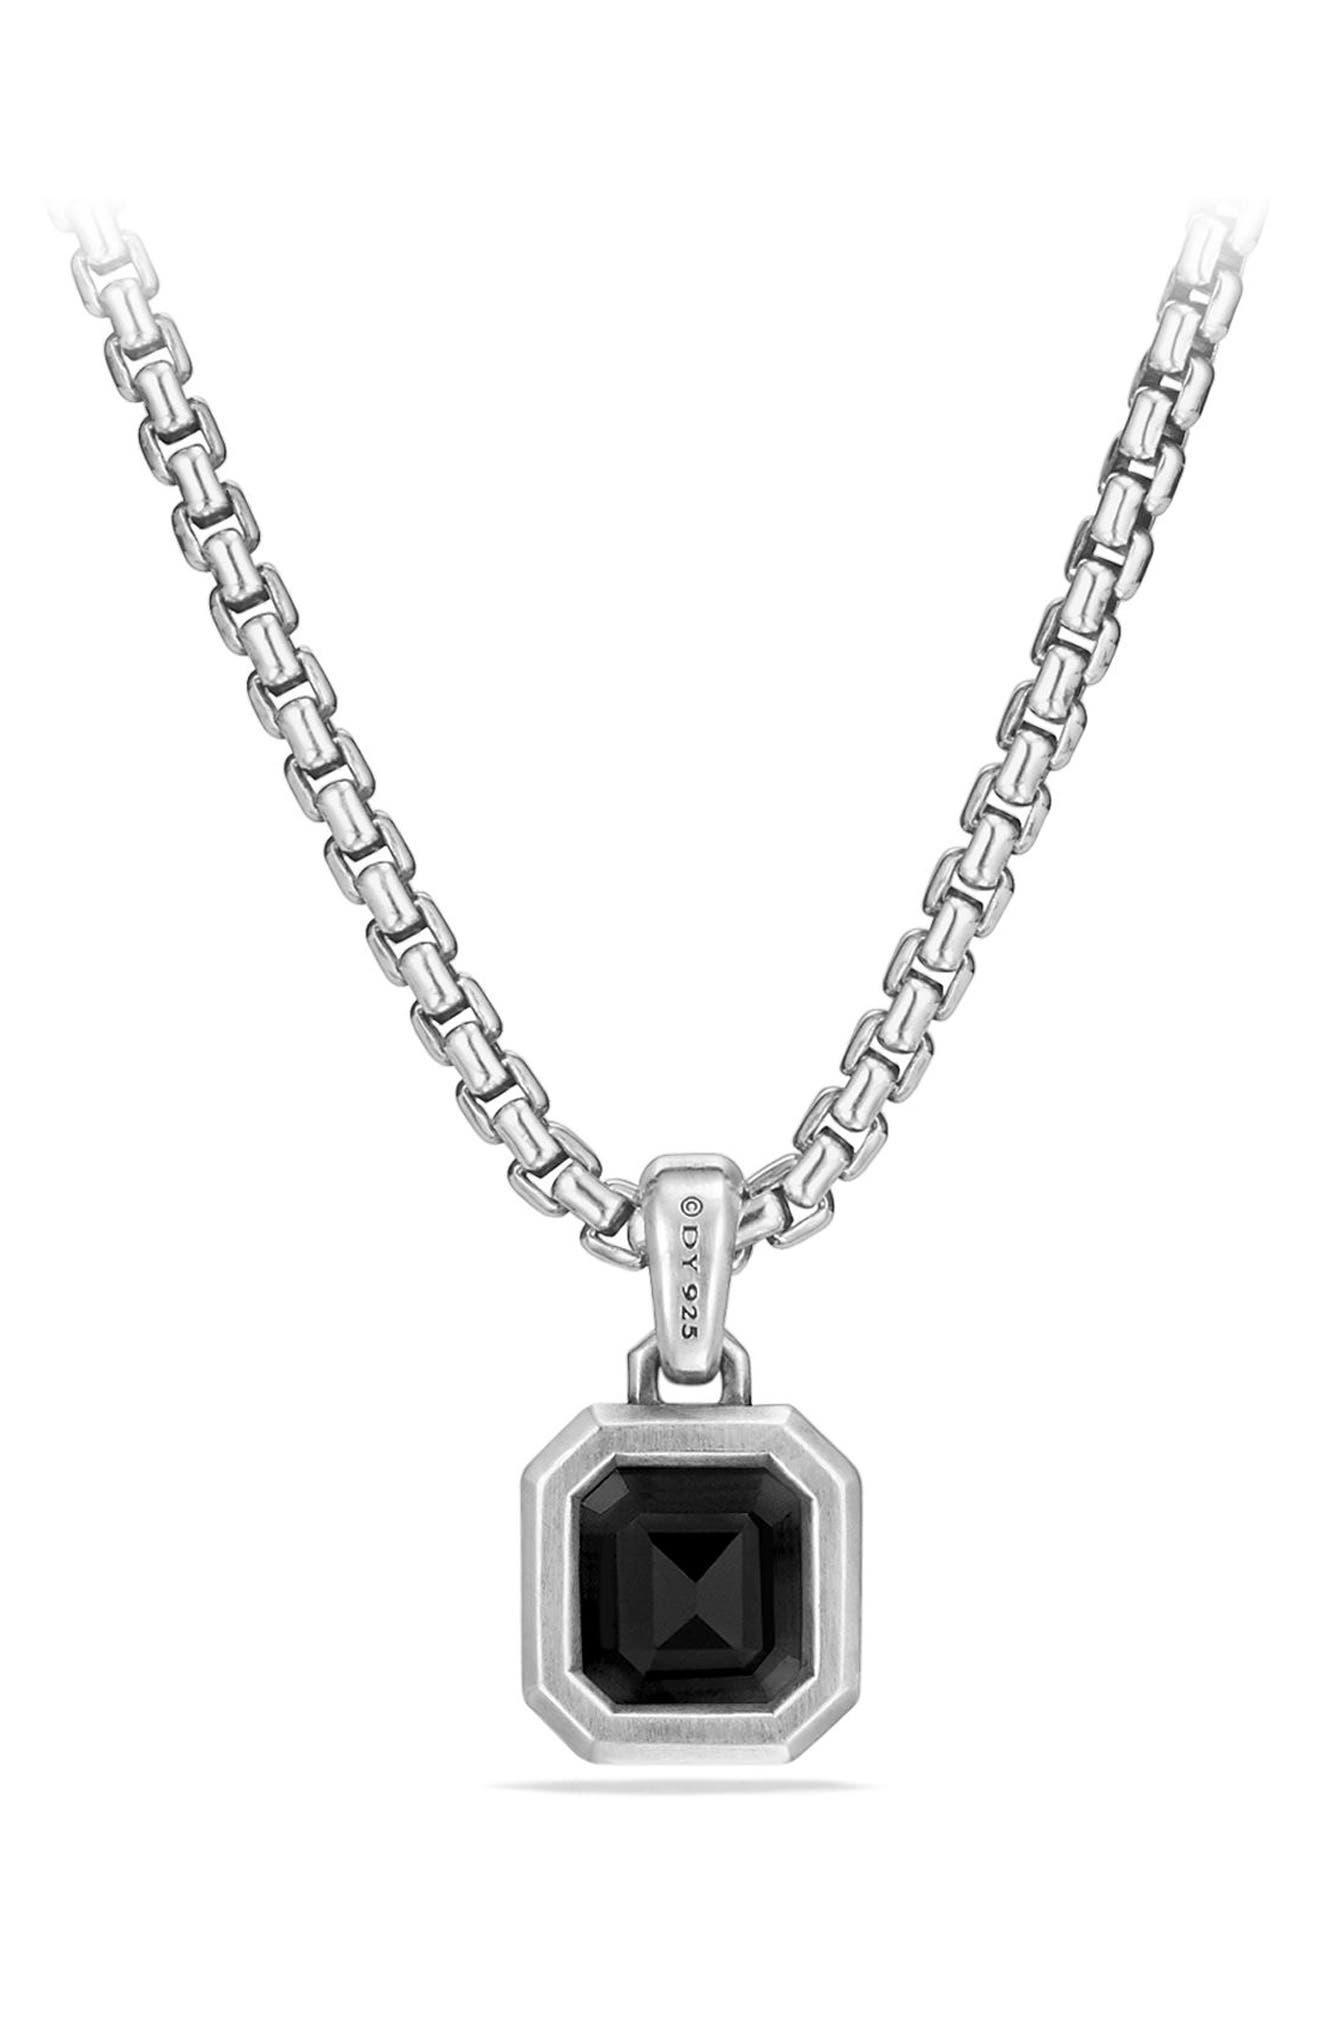 Emerald Cut Semiprecious Stone Amulet,                             Alternate thumbnail 3, color,                             SILVER/ BLACK ONYX